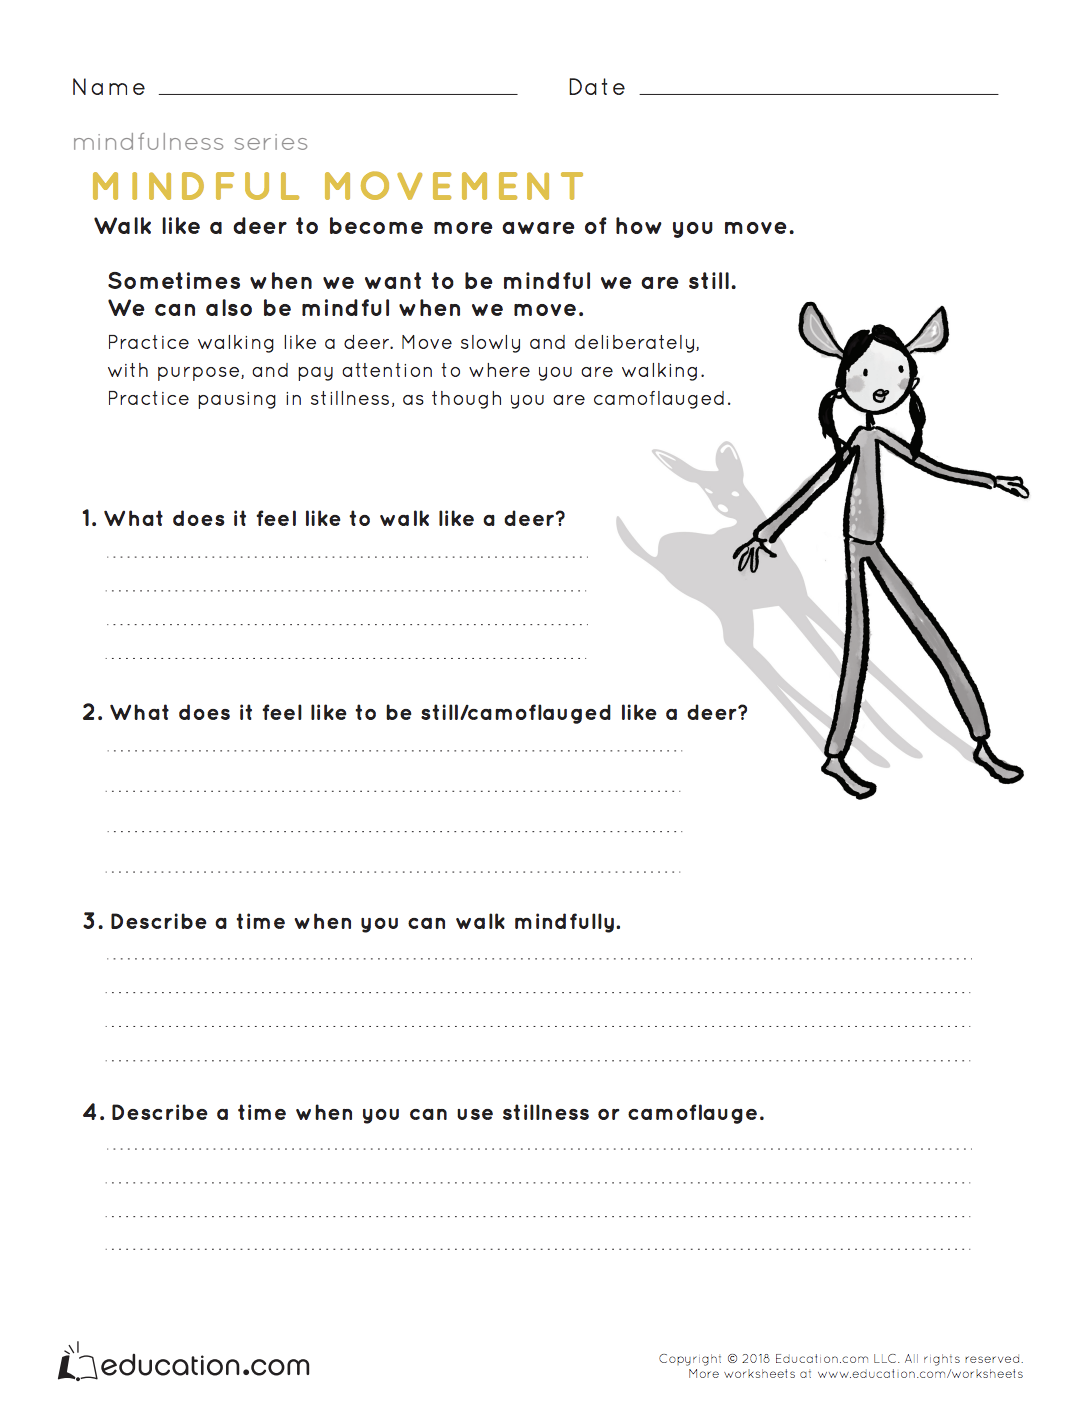 Mindfulness Mindful Movement